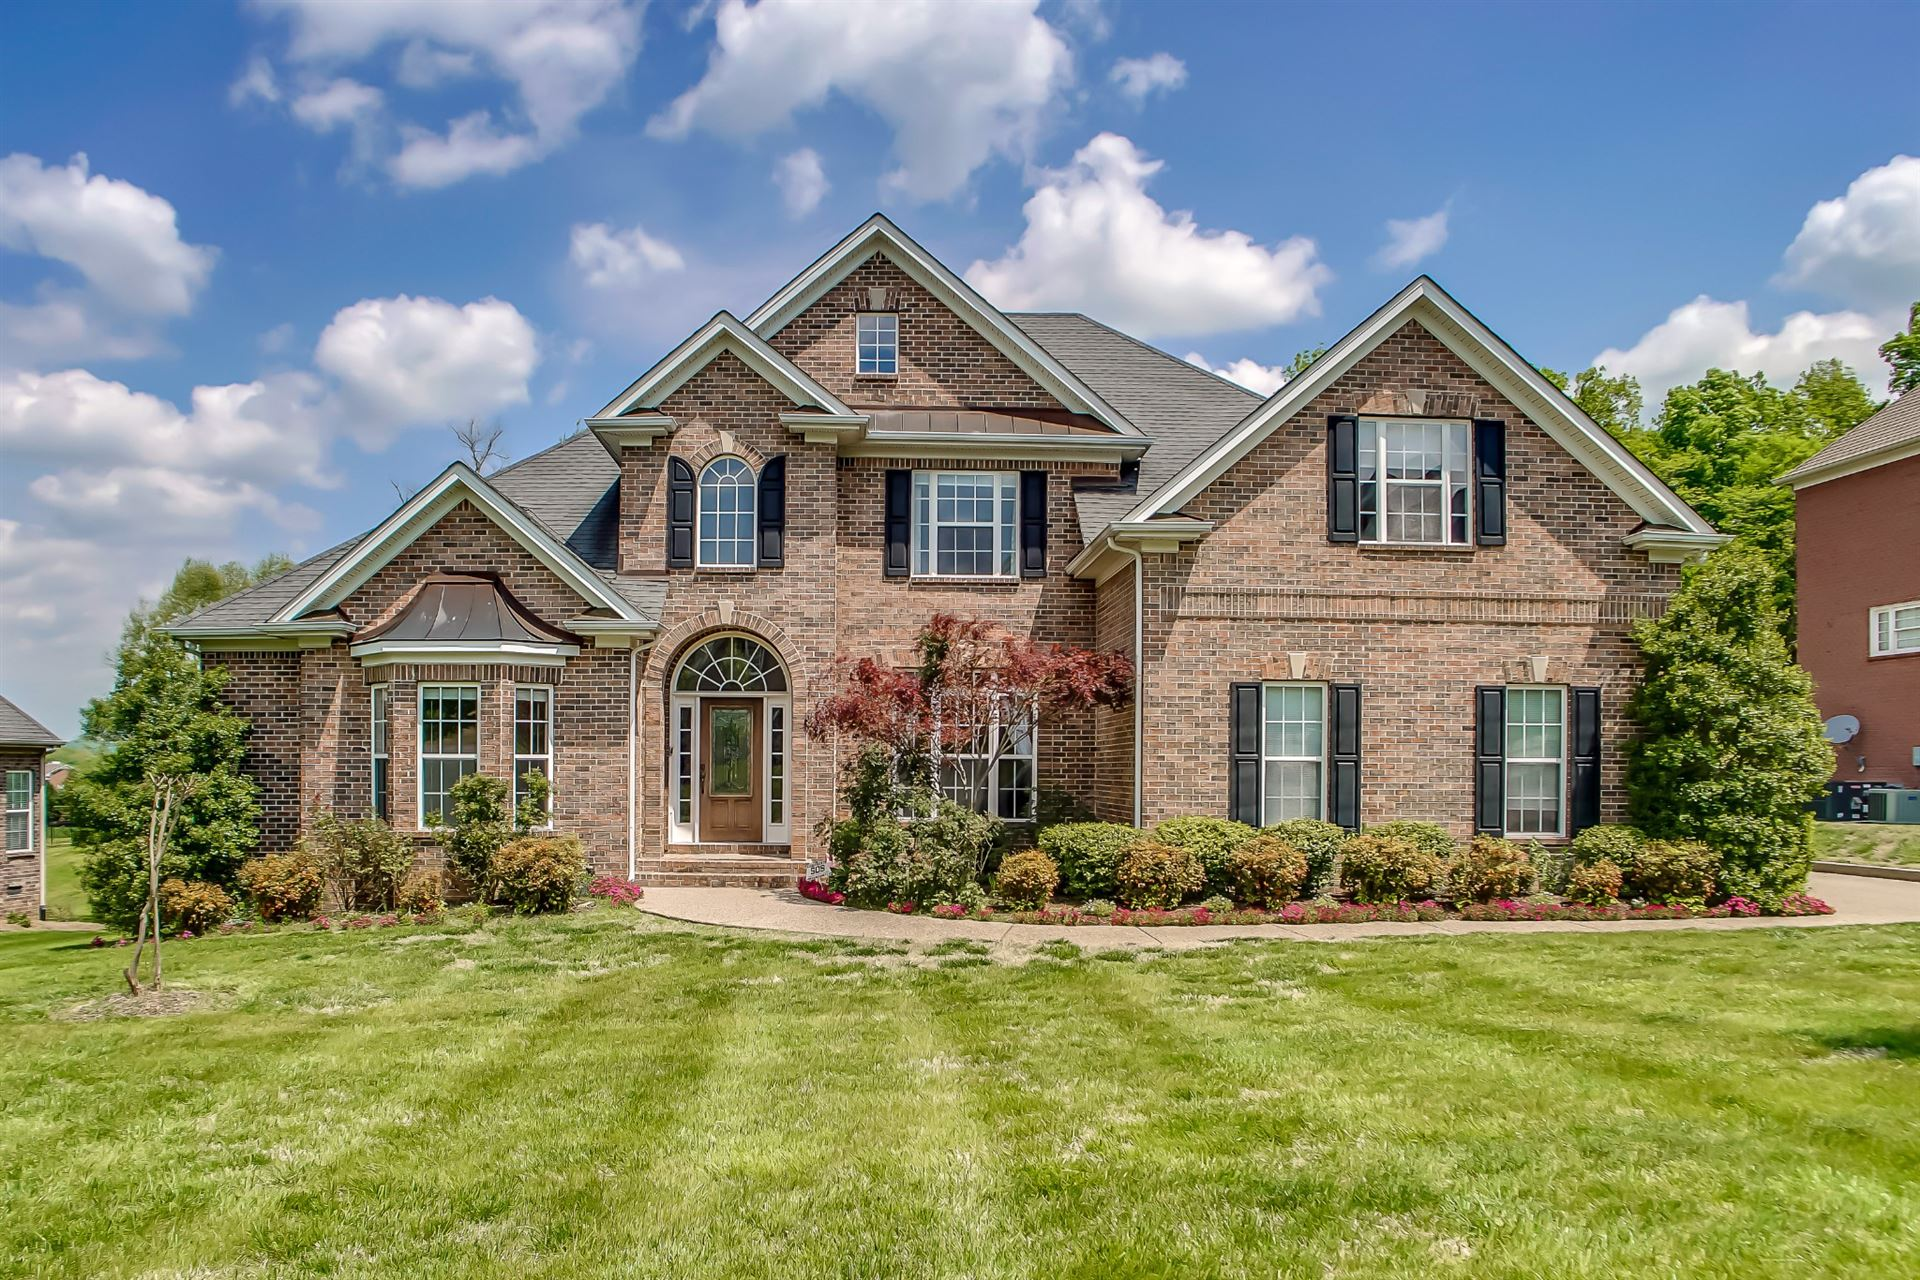 Photo of 2012 Valley Brooke Dr, Brentwood, TN 37027 (MLS # 2135430)